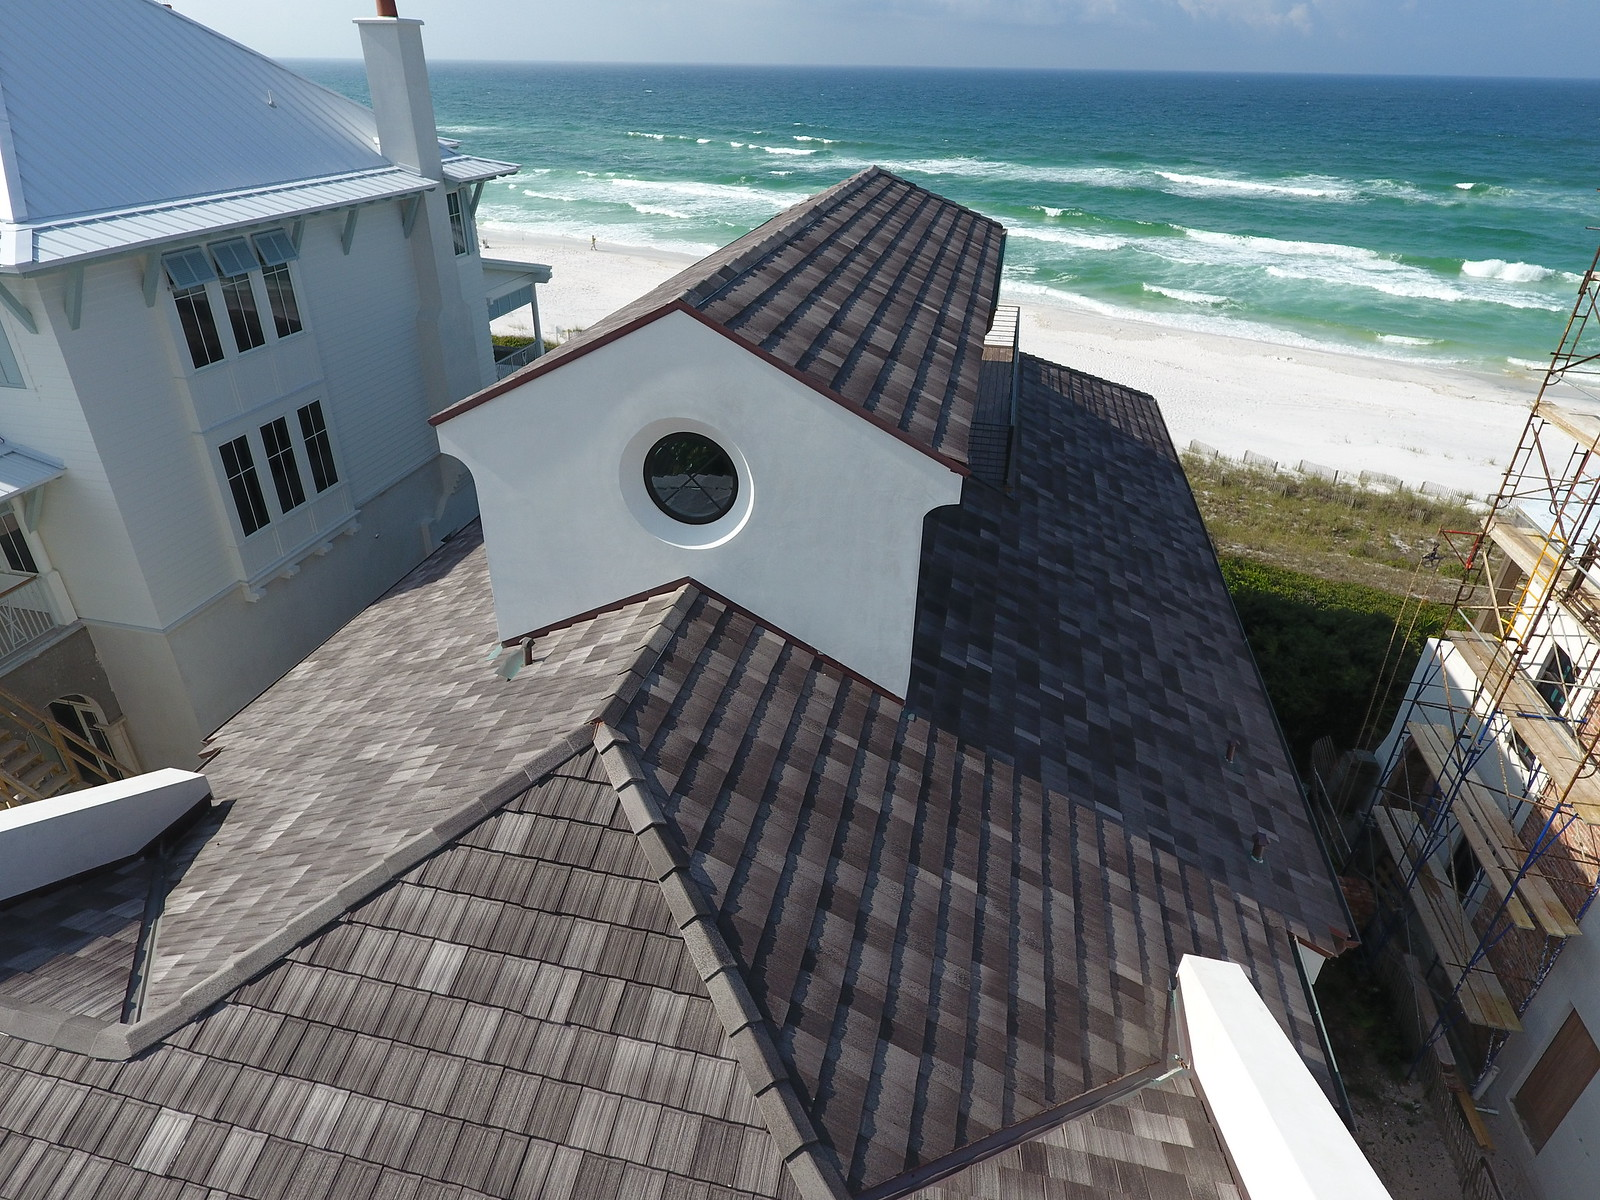 Private Residence - Seagrove Beach, FL  Ludowici Roof Tile